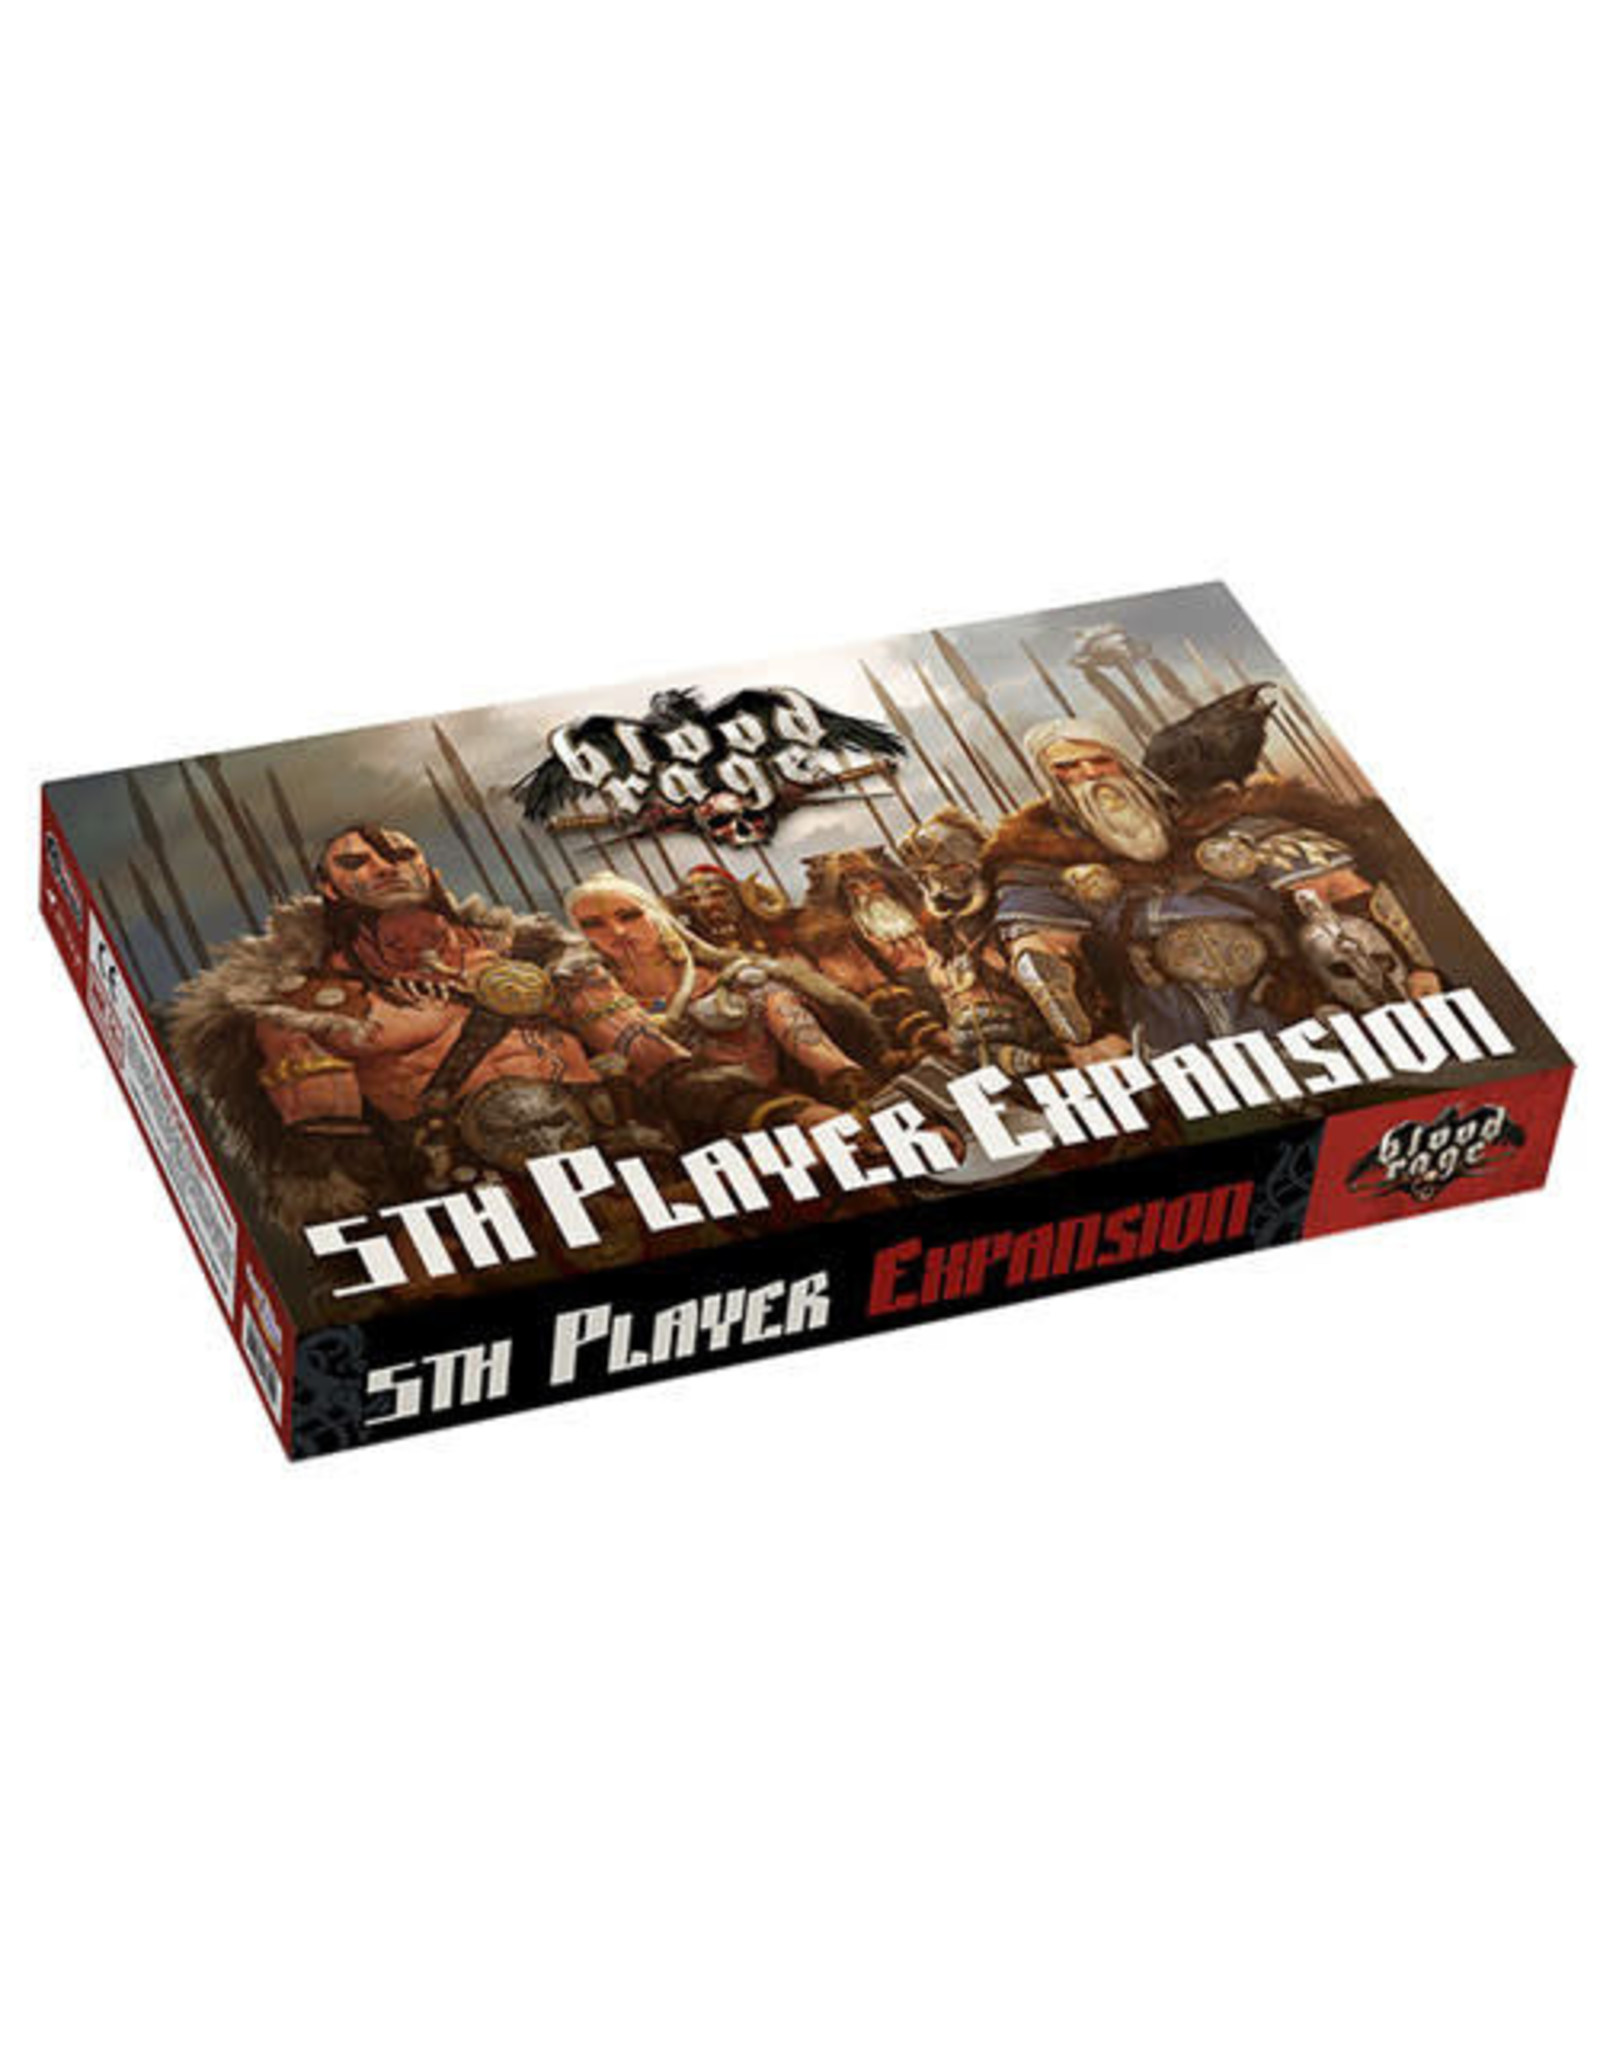 Blood Rage 5th Player Expansion Board Game